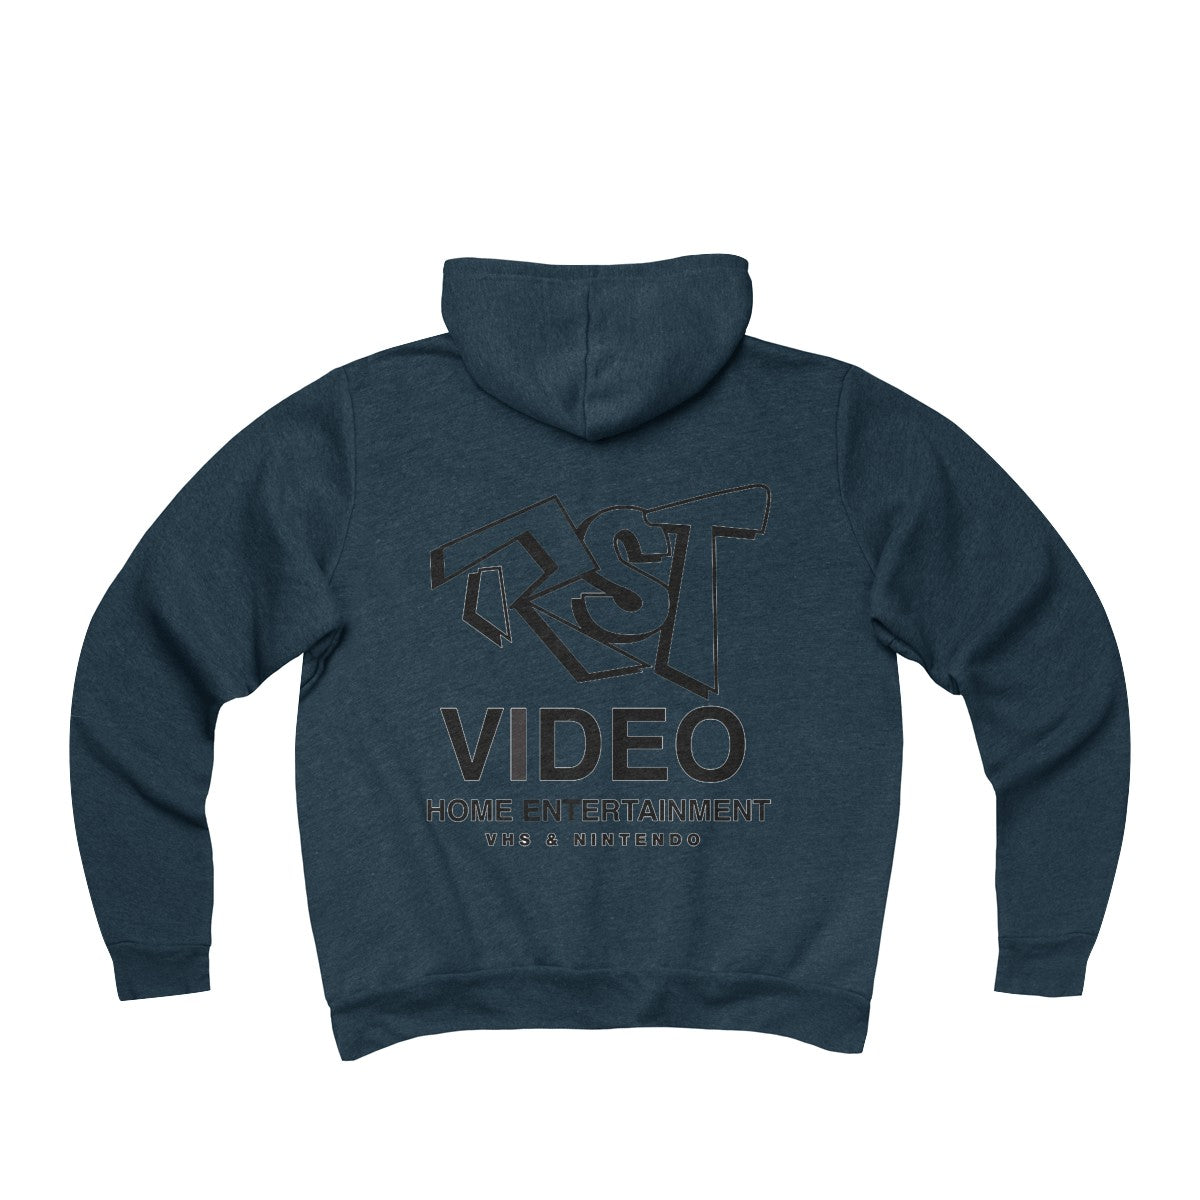 RST Video Unisex Sponge Fleece Full-Zip Hoodie